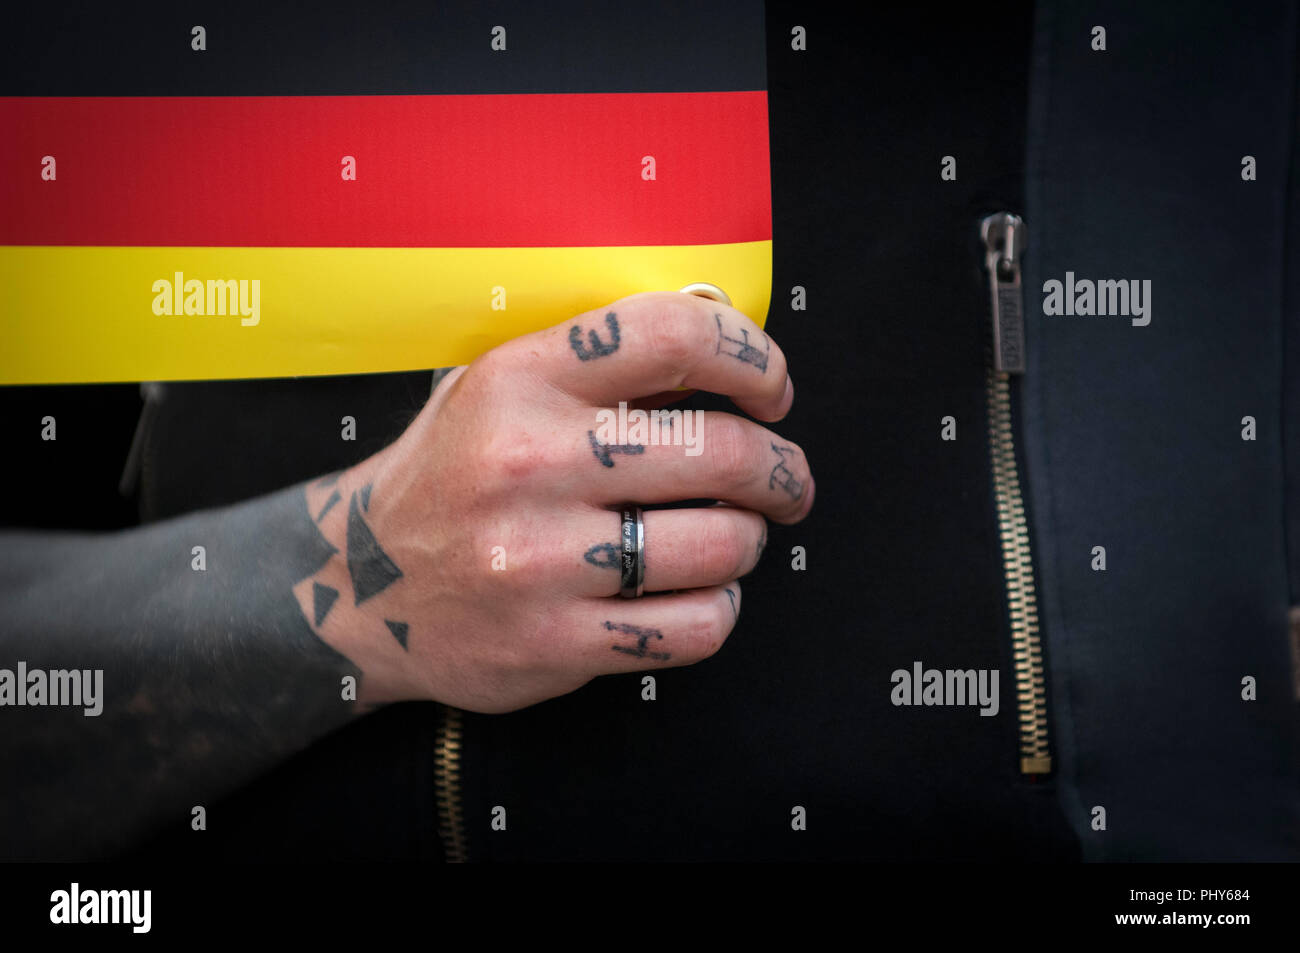 Far Right 'Pro Chemnitz' rally taking place at Gellerts Strasse outside the Chemnitz Football Club's. Demonstrator  has 'HATE 'tattooed on hand. - Stock Image